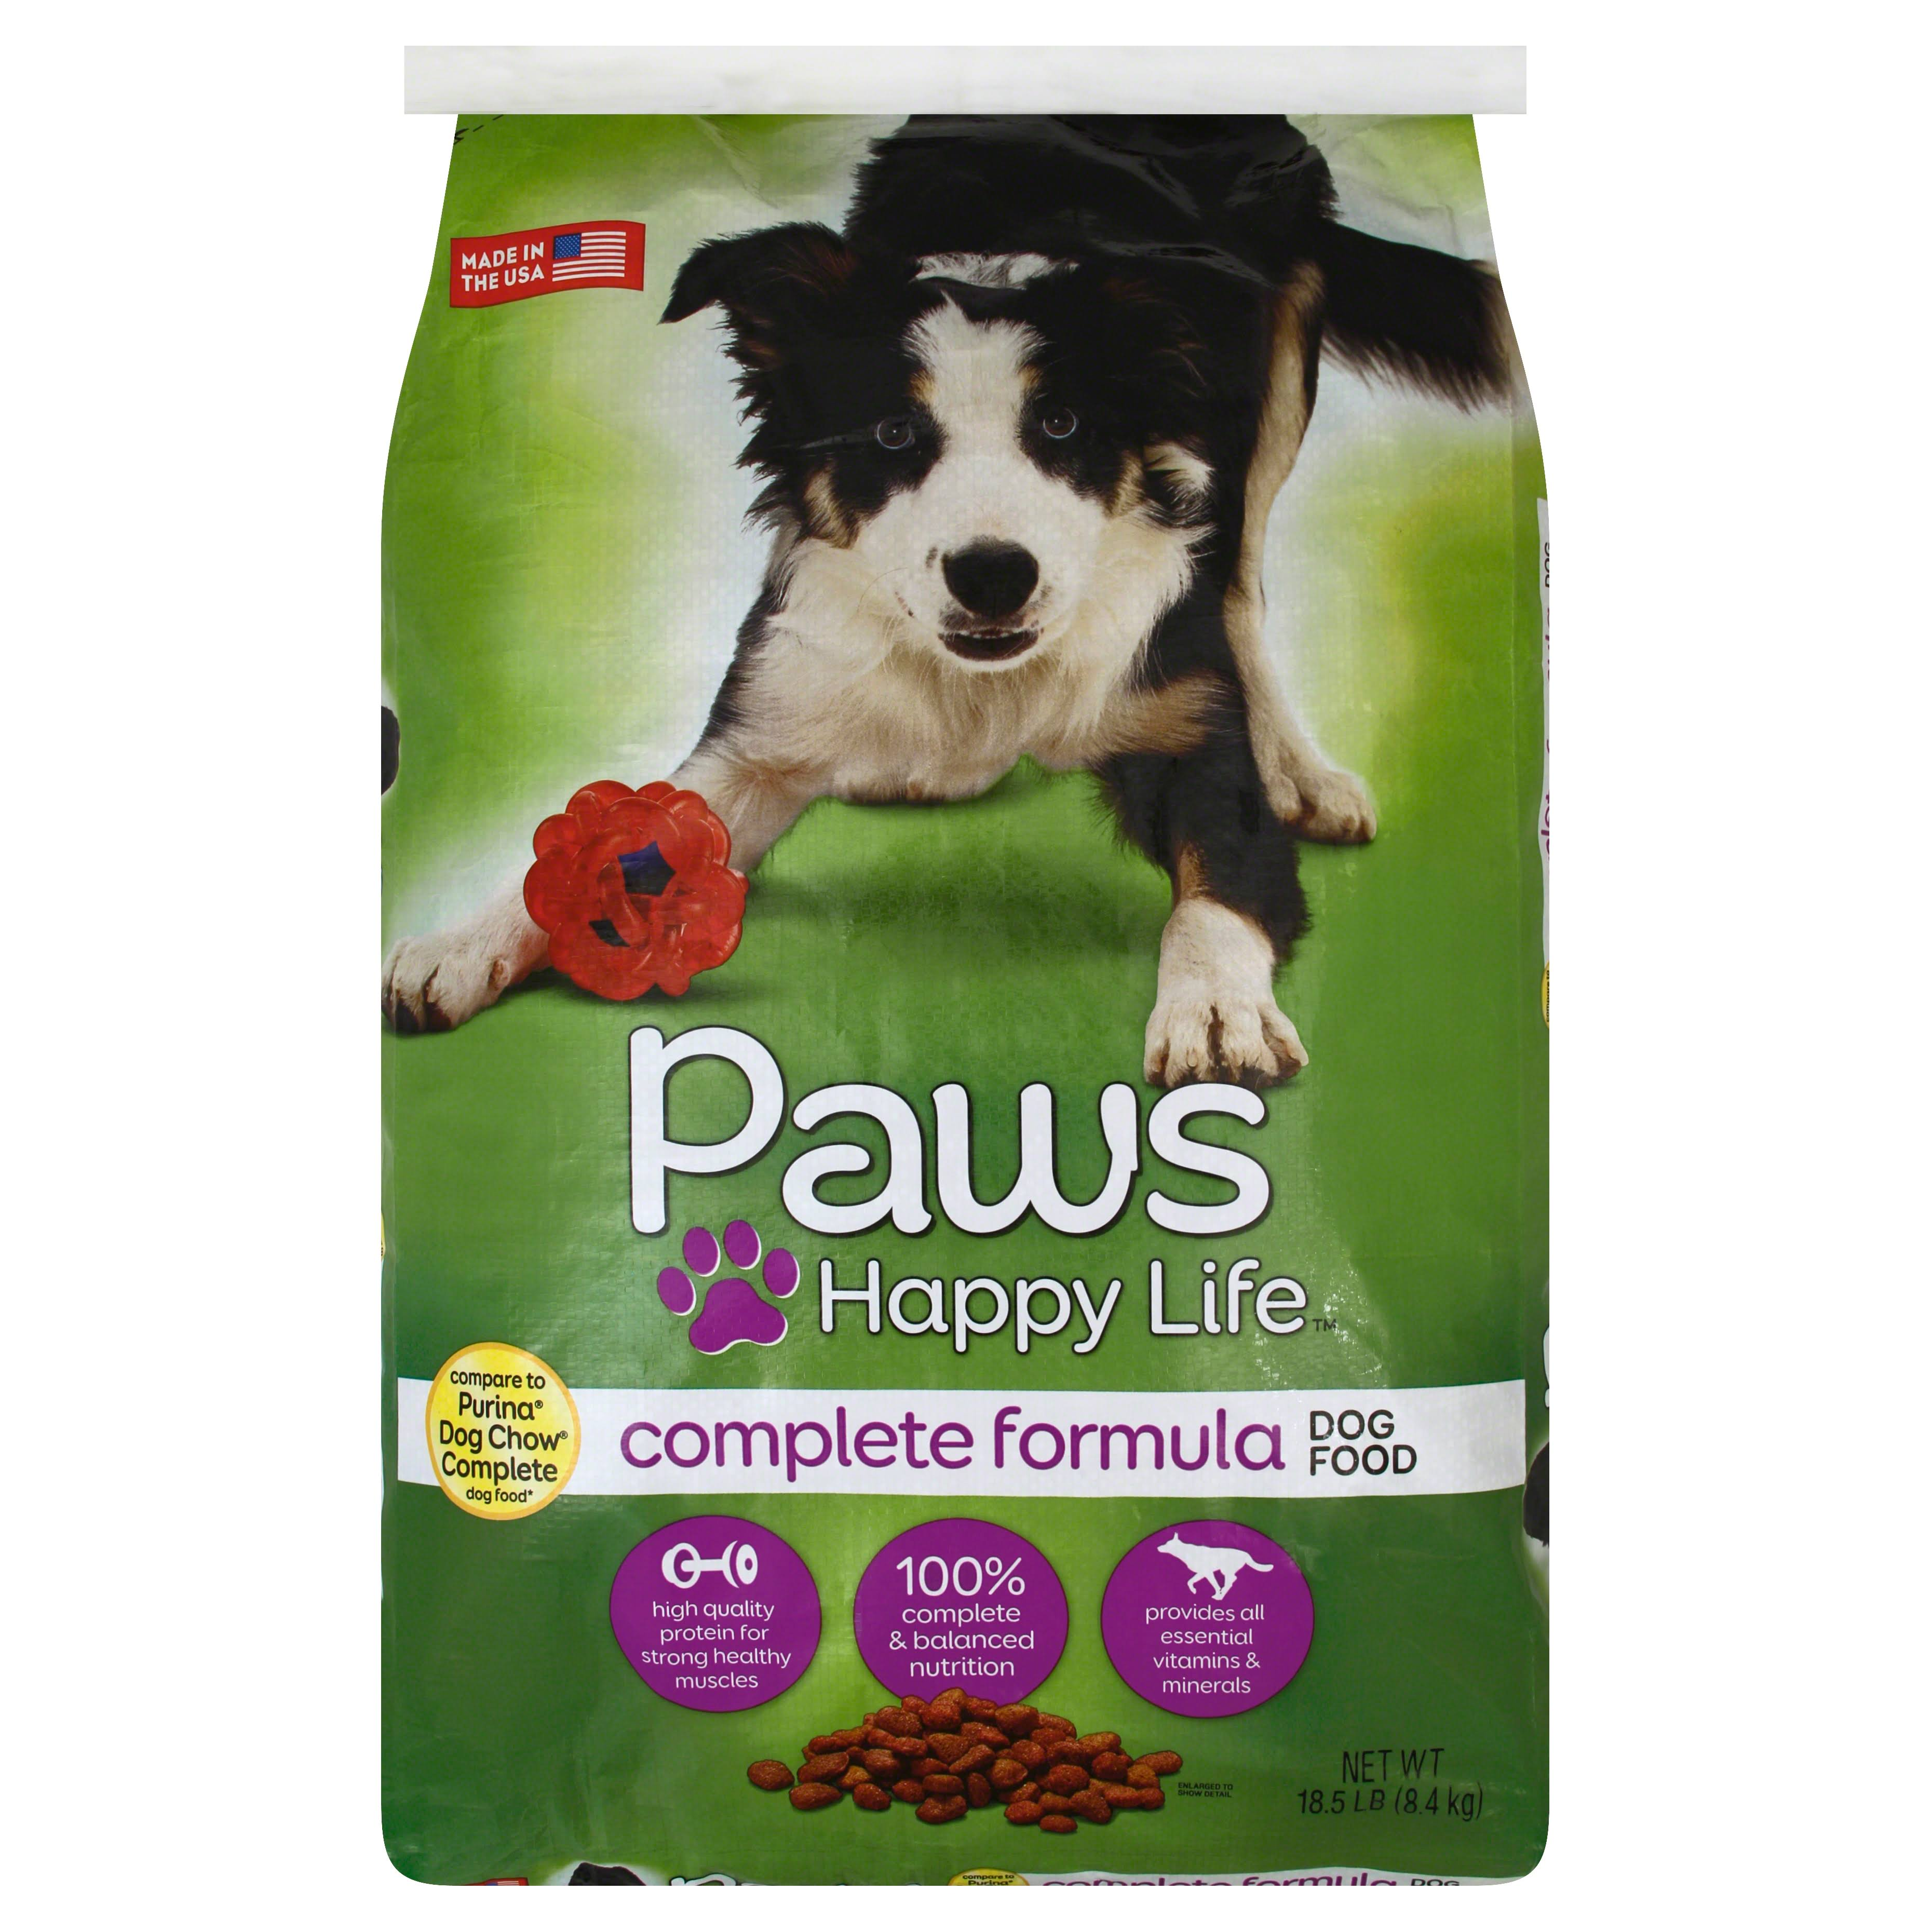 Paws Happy Life Dog Food, Complete Formula - 18.5 lb